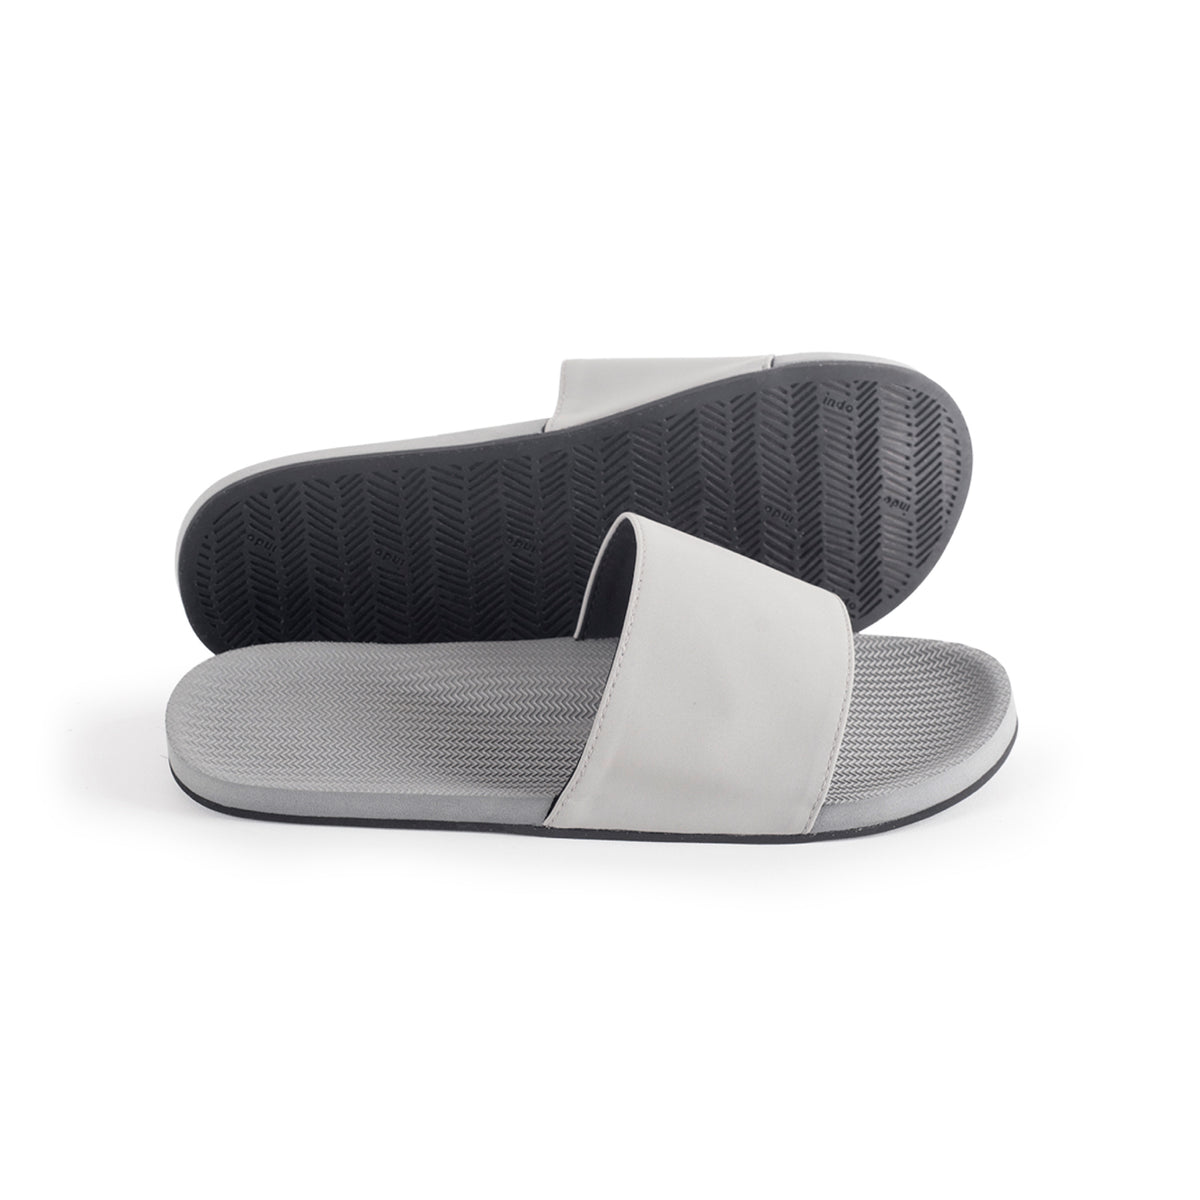 Men's Slides Granite - Lightweight, durable, waterproof, comfortable. Sustainably made vegan shoes using natural rubber and recycled tires